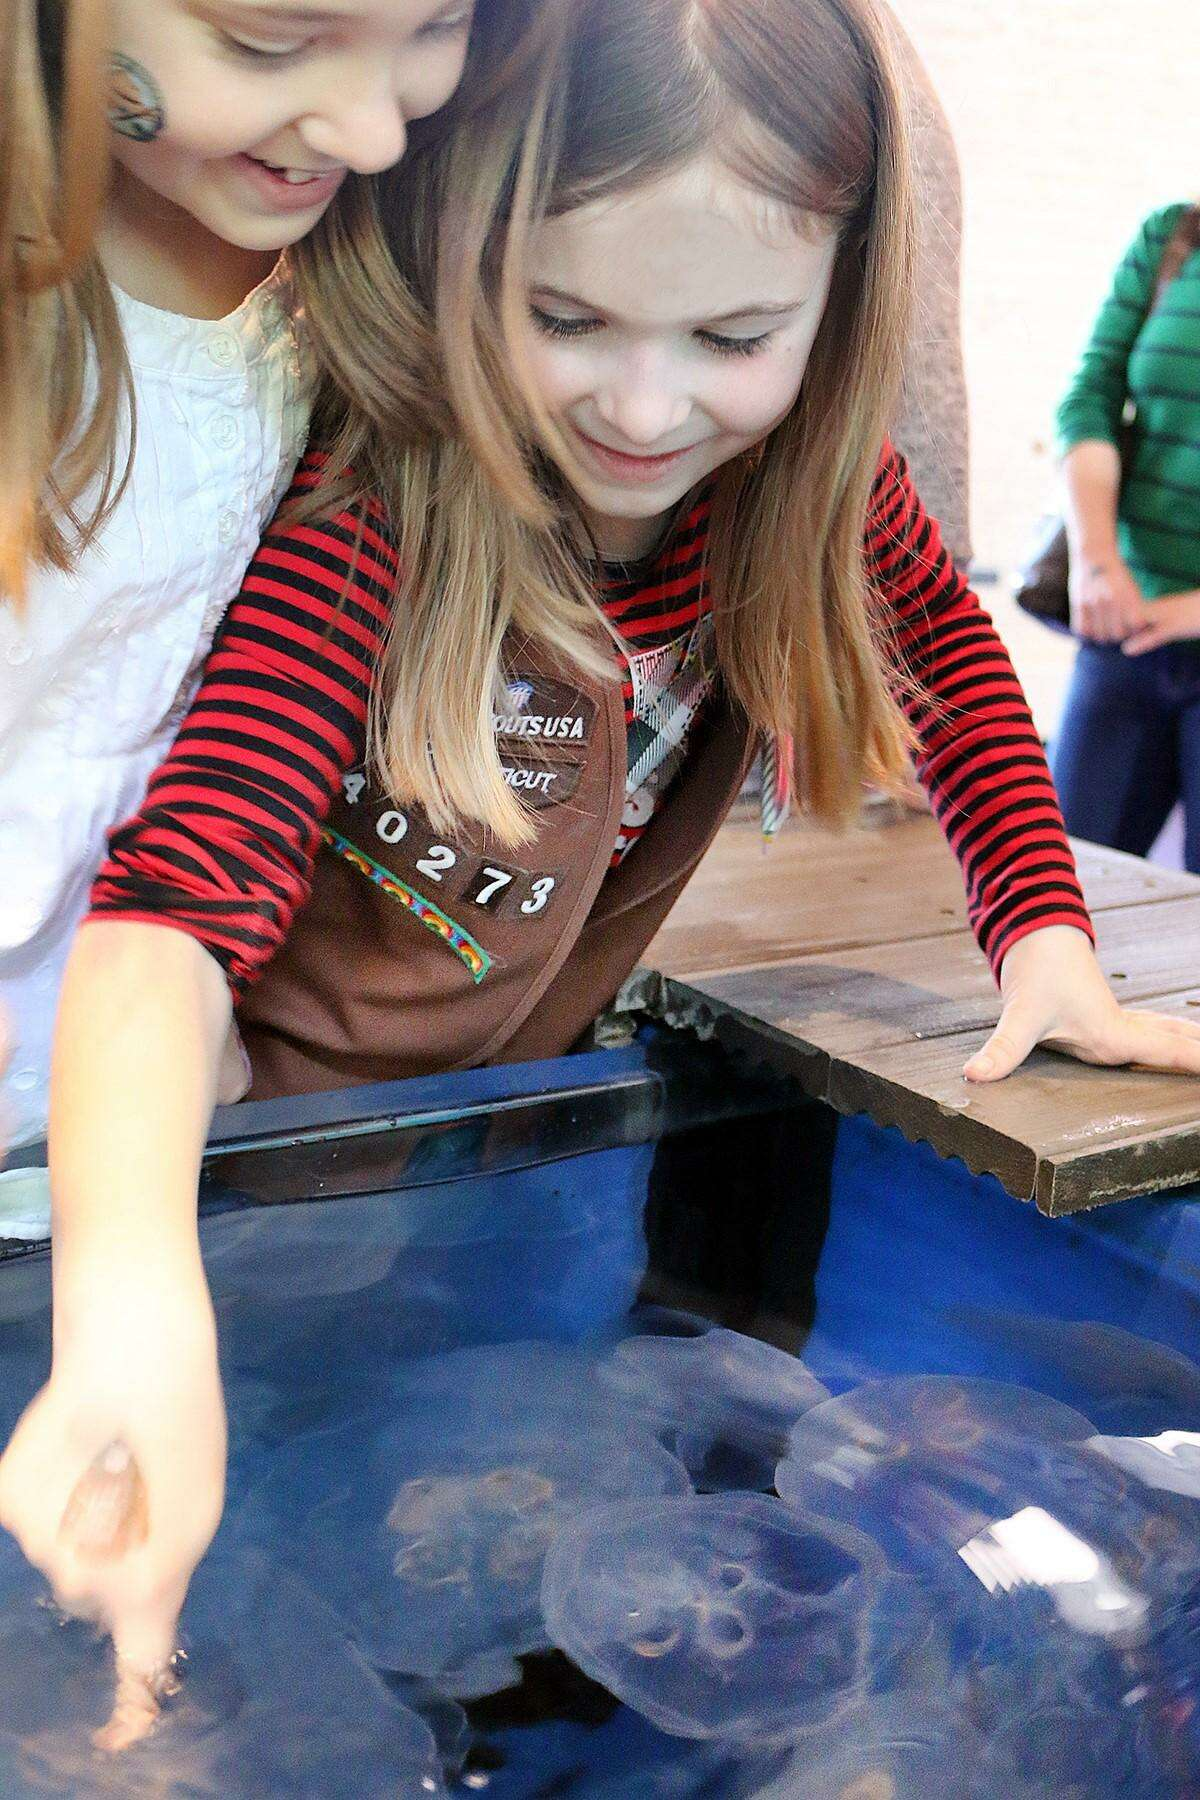 The Maritime Aquarium at Norwalk is discounting admission for Girl and Boy Scouts at its annual Scout Day March 23.